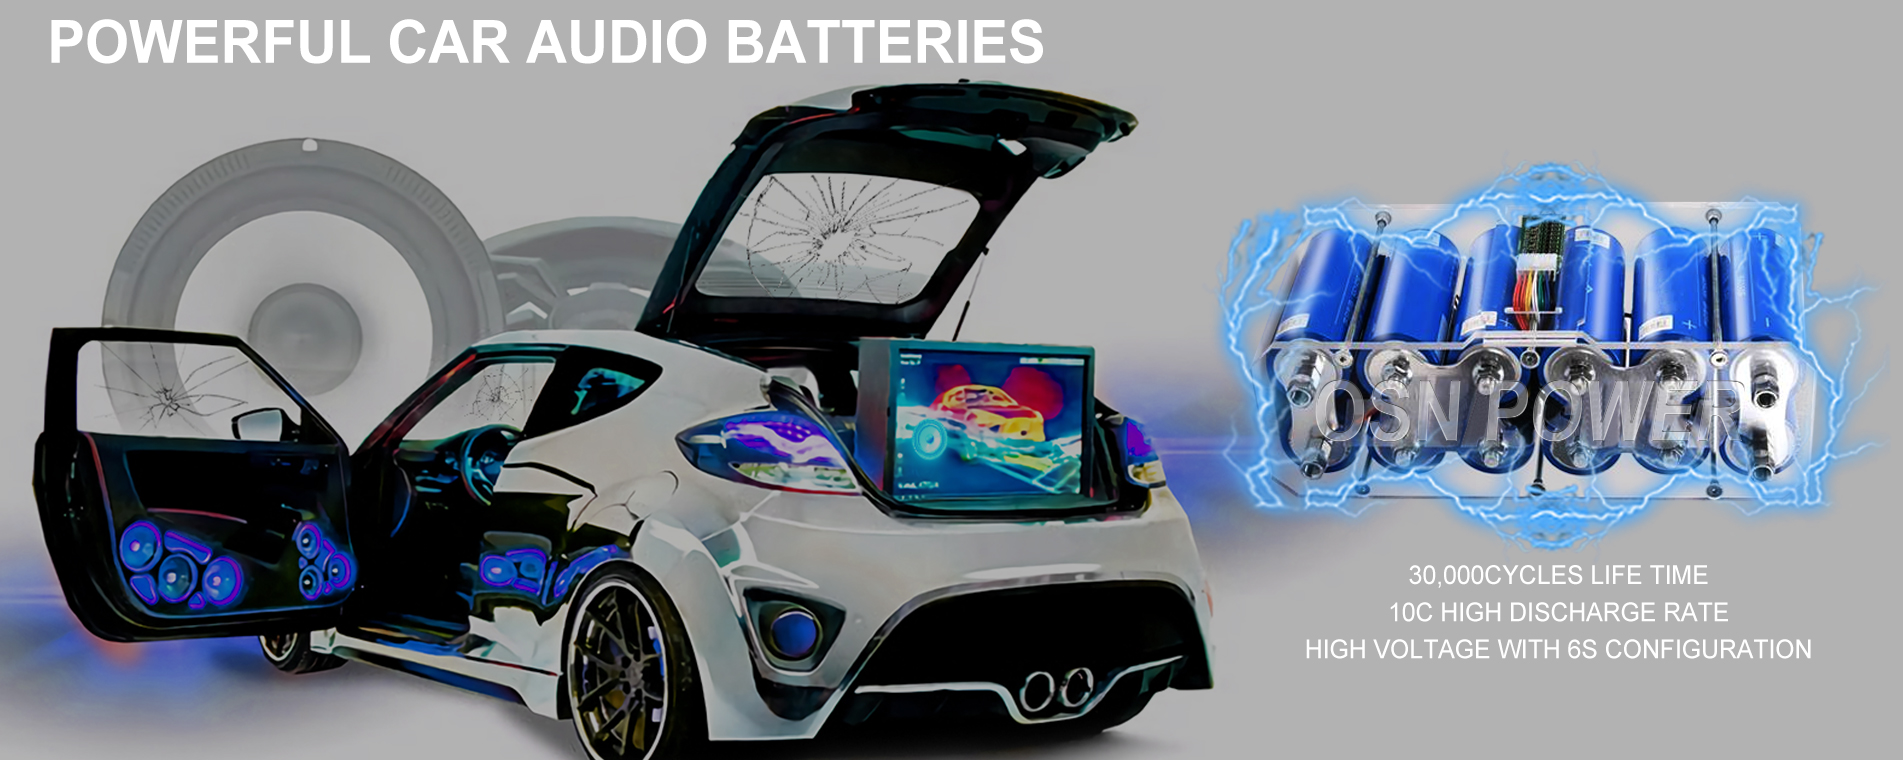 Power Car Audio Battery